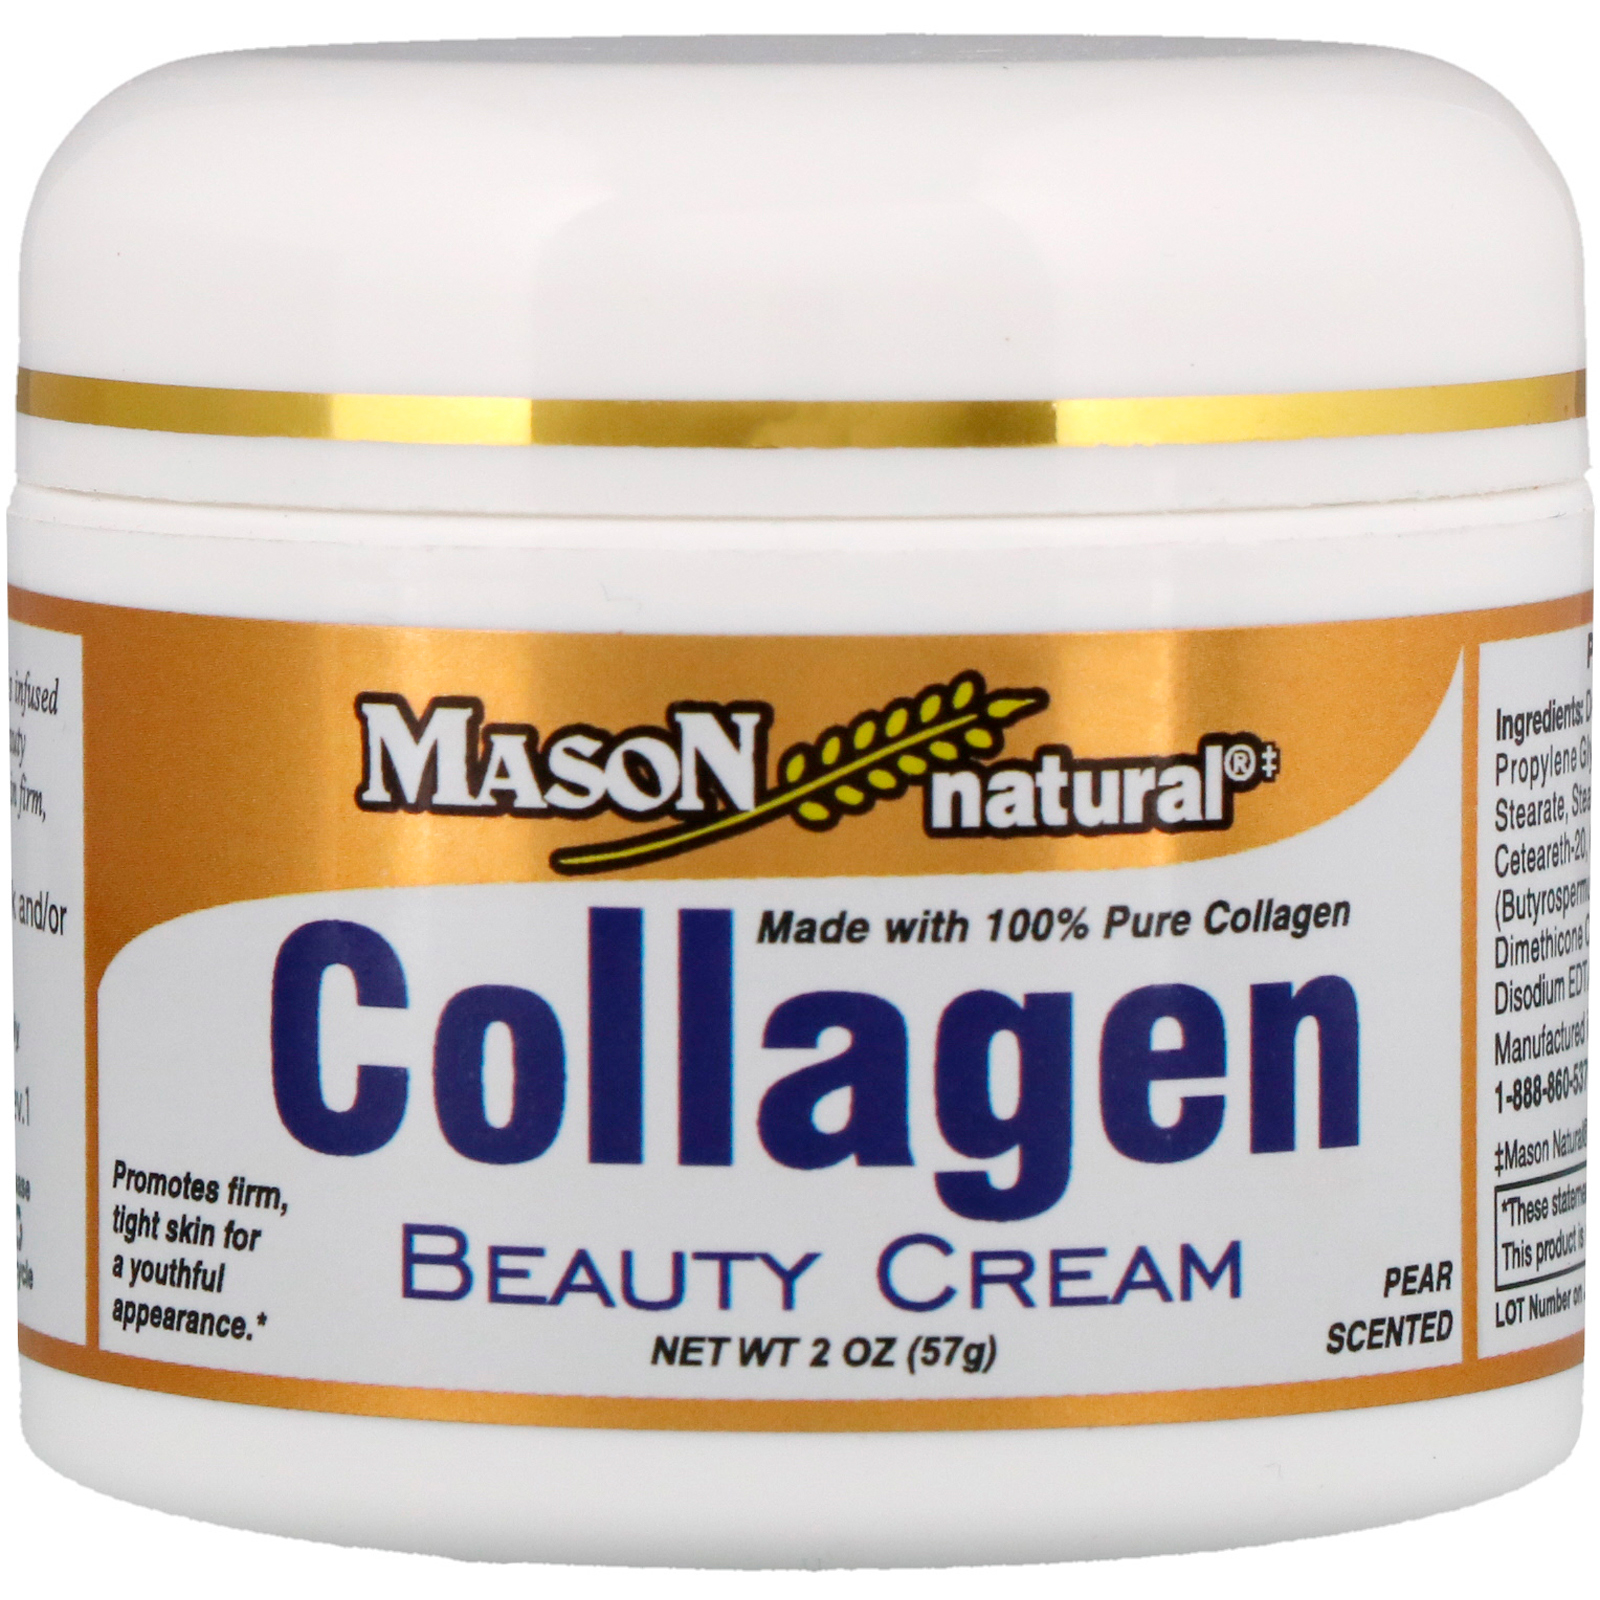 Collagen Beauty Cream Pear Scent - 2 oz. by Mason Natural (pack of 4) Aloe Vera Face Sheet Mask - 1 Count by The Creme Shop (pack of 3)